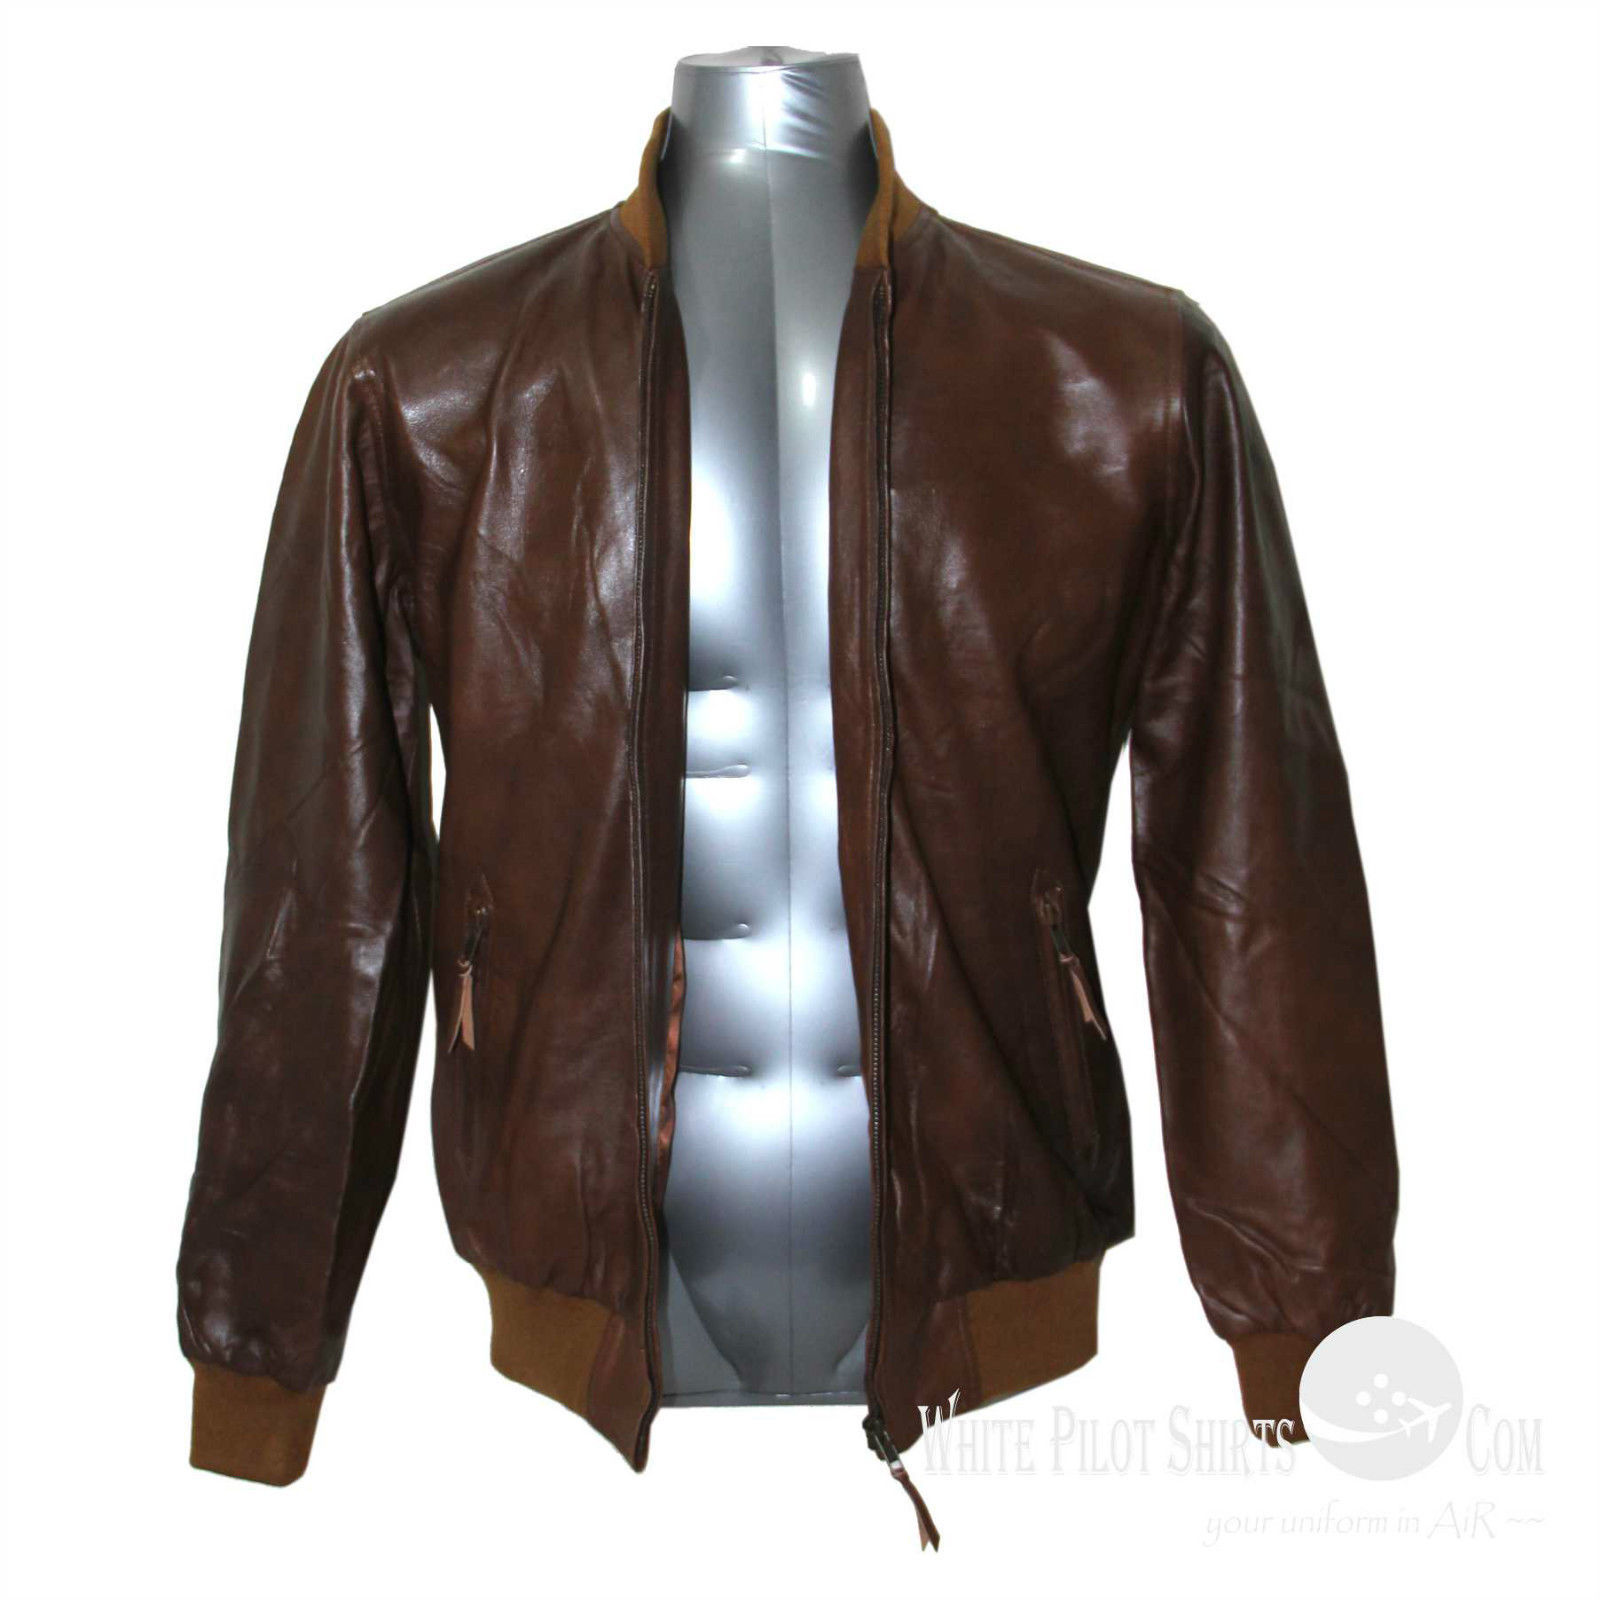 Polo Mens leather jacket Soft wax Ribbed collar cuff waist Bomber Gents Monaco